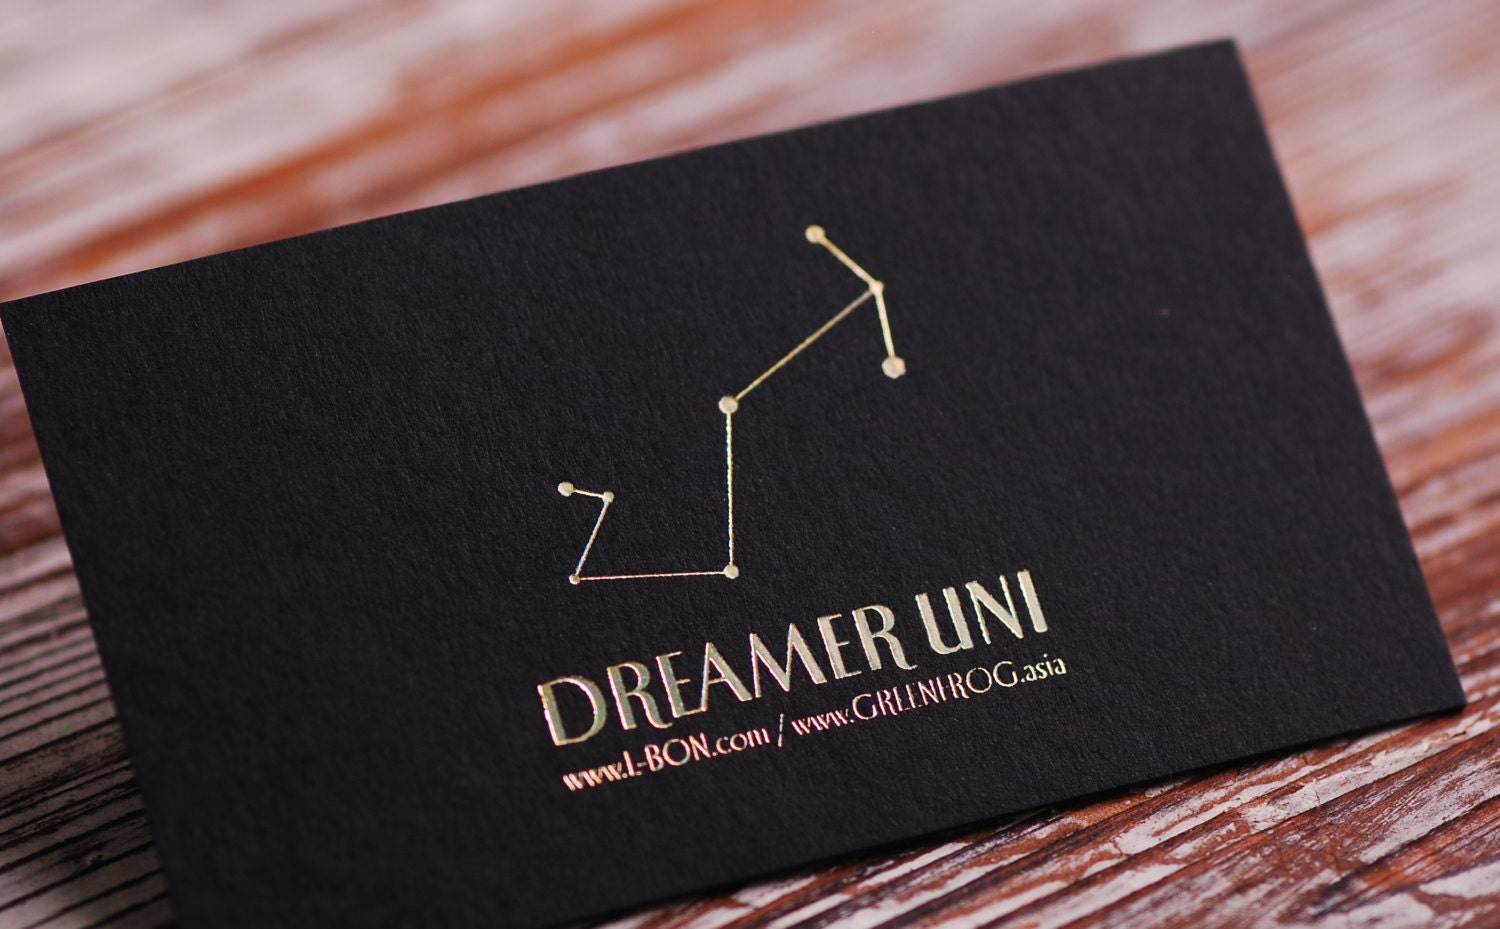 FREE Shipping 100 Customized Business Cards by Letterpress